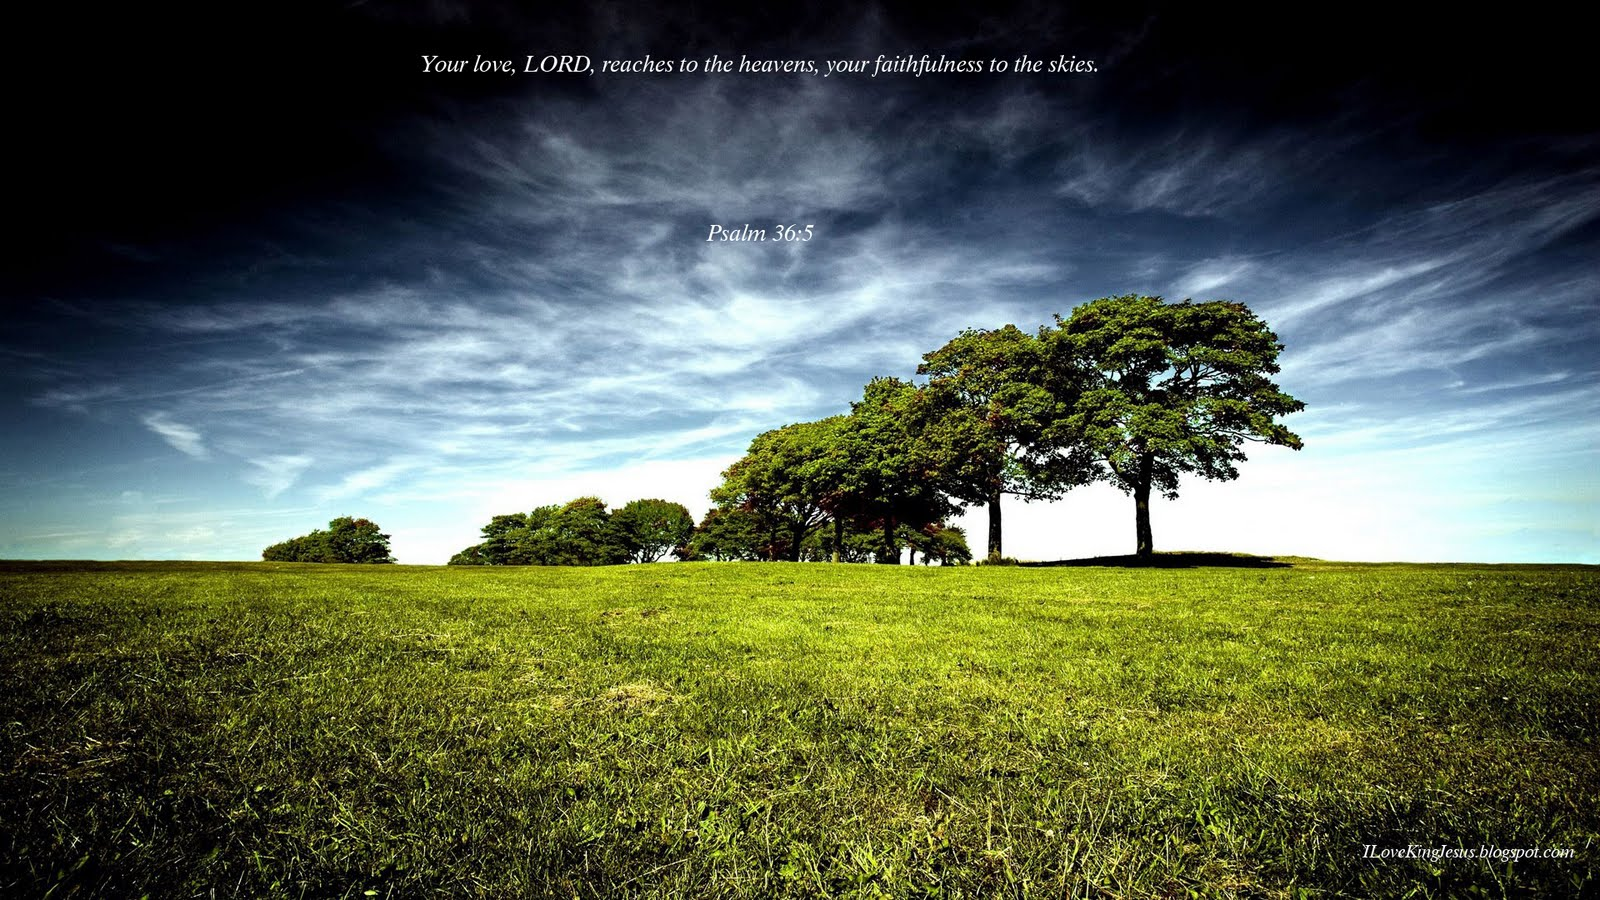 49 hd christian wallpapers 1080p on wallpapersafari - Full hd christian wallpaper ...